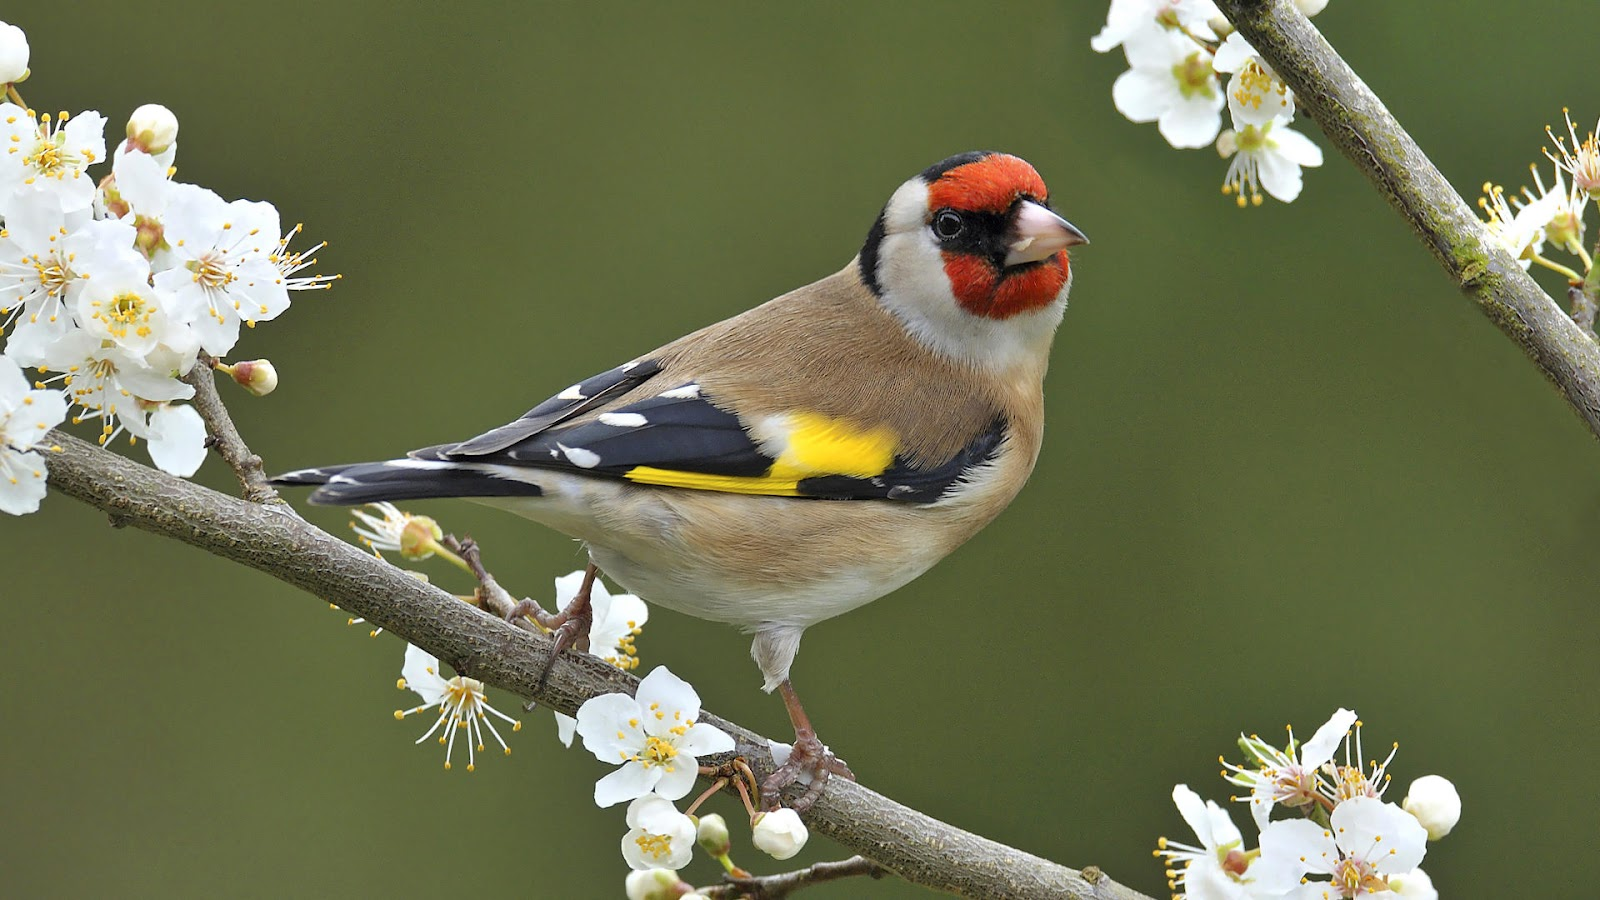 animal wallpaper with a bird sitting on a branch HD birds wallpapers 1600x900